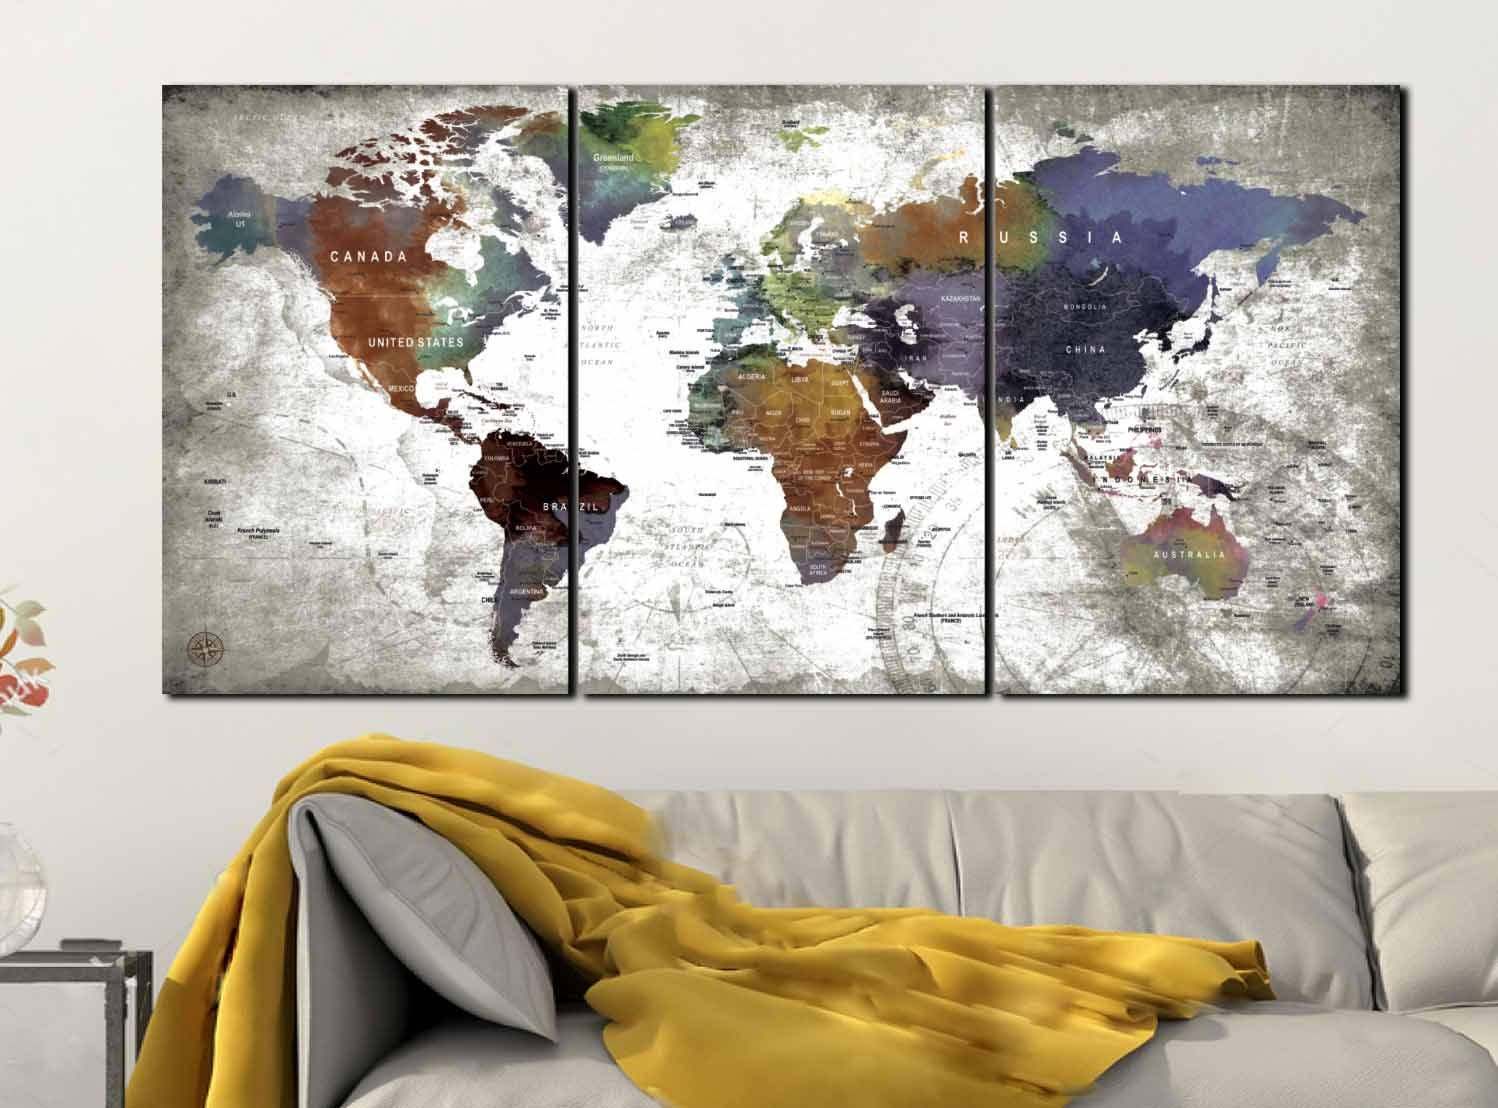 World map canvasworld map 3 panel canvas print world map canvas world map canvasworld map 3 panel canvas print world map canvas art watercolorworld map art printpush pin map canvastravel map canvas gumiabroncs Image collections